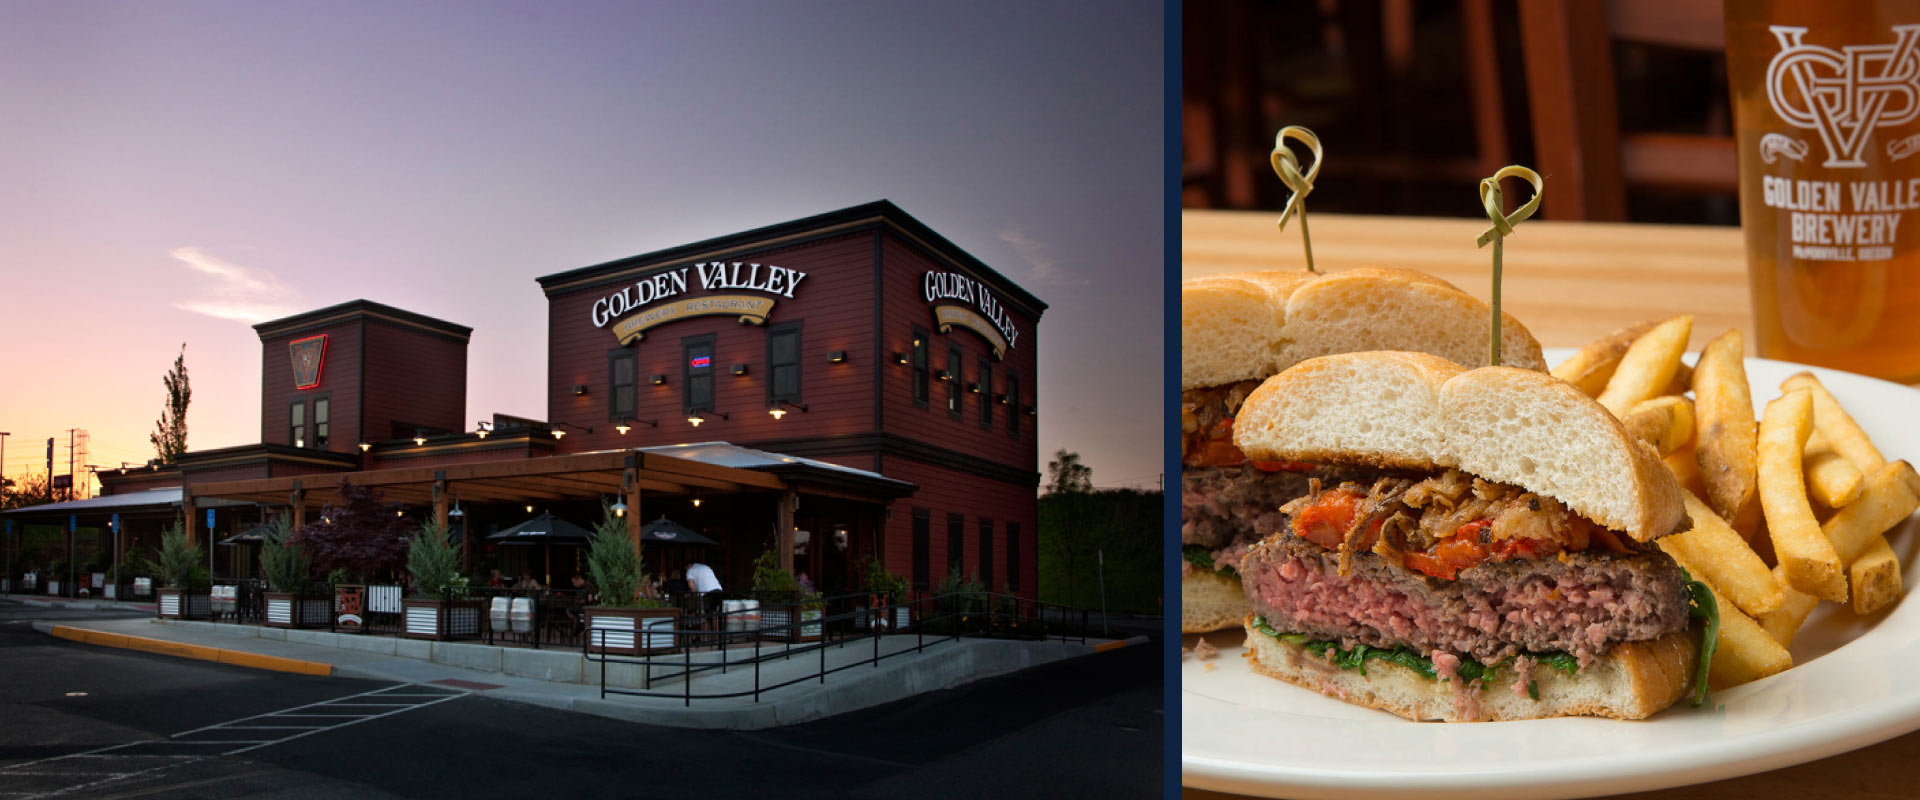 Golden Valley Brewery & Restaurant in Beaverton, Oregon